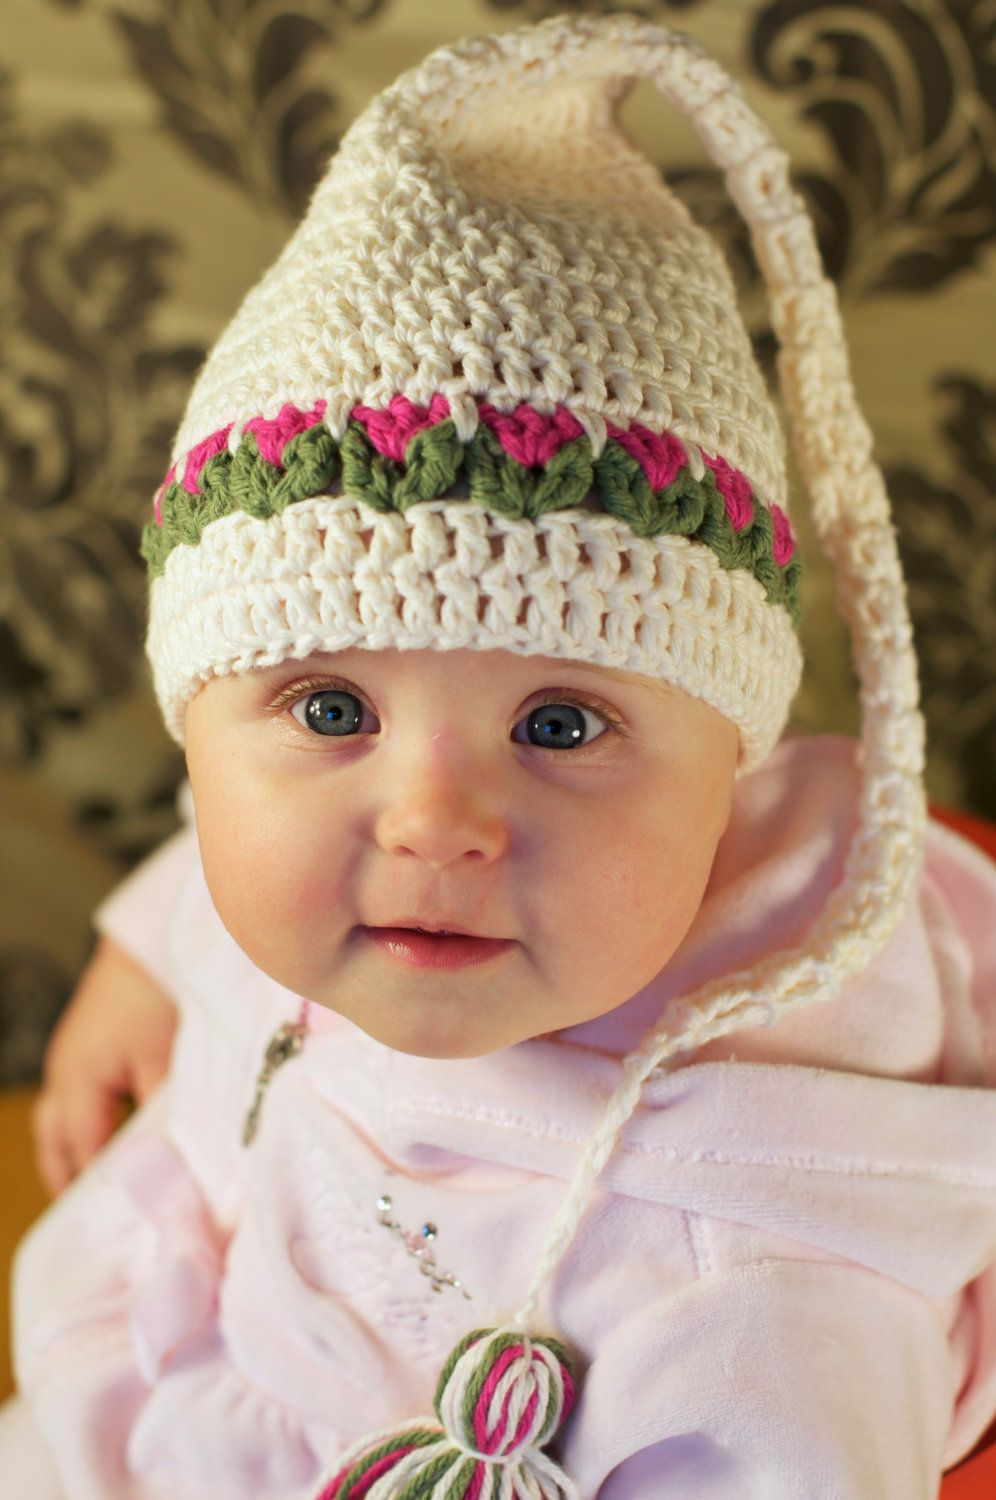 Tulips hat crochet pattern for babies and kids crochethats tulips hat crochet pattern for babies and kids bankloansurffo Images